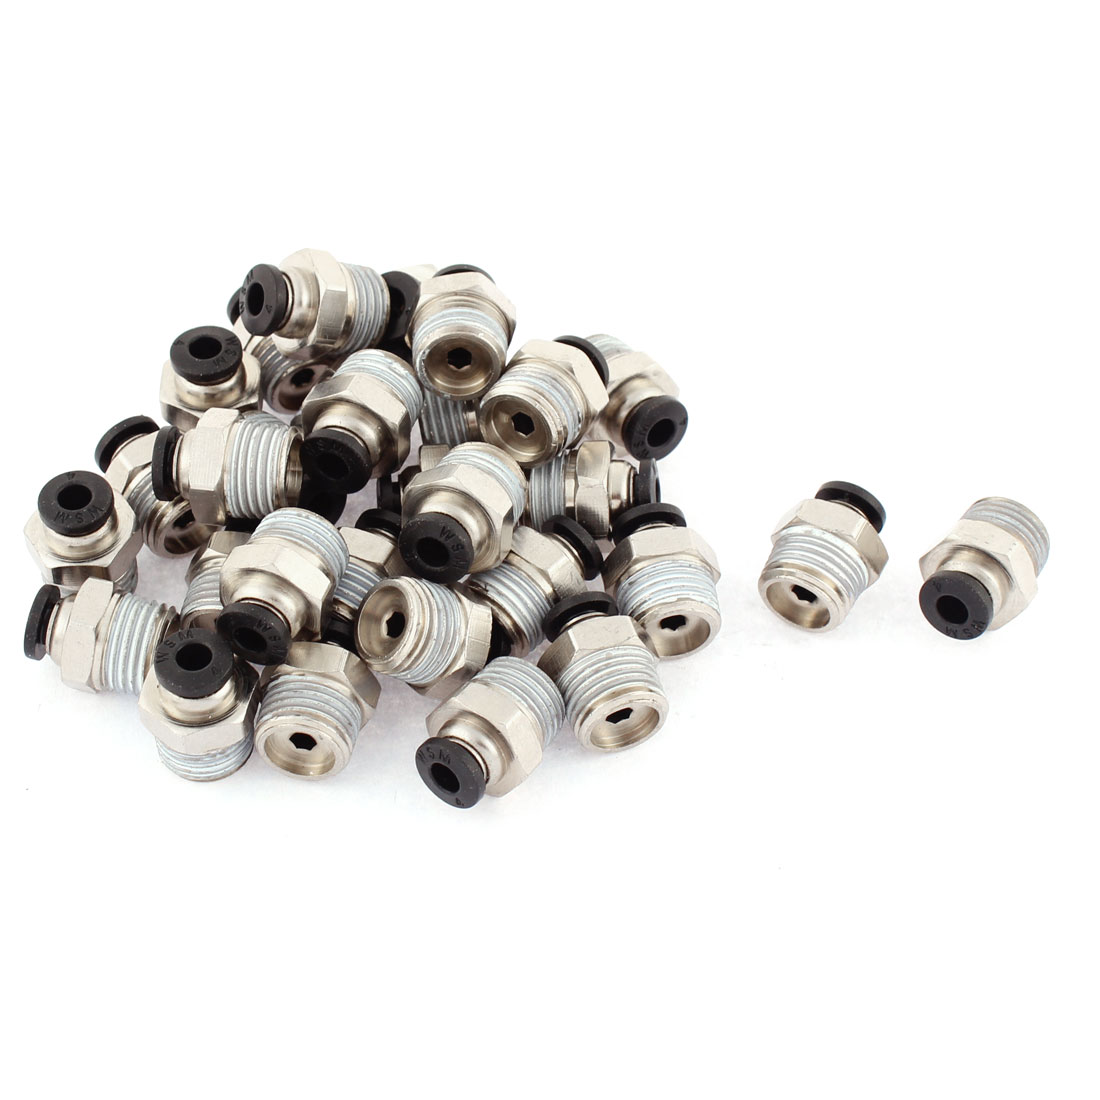 30 Pcs 1/4BSP Male Thread 4mm Tube Push In Joint Pneumatic Connector Quick Fittings